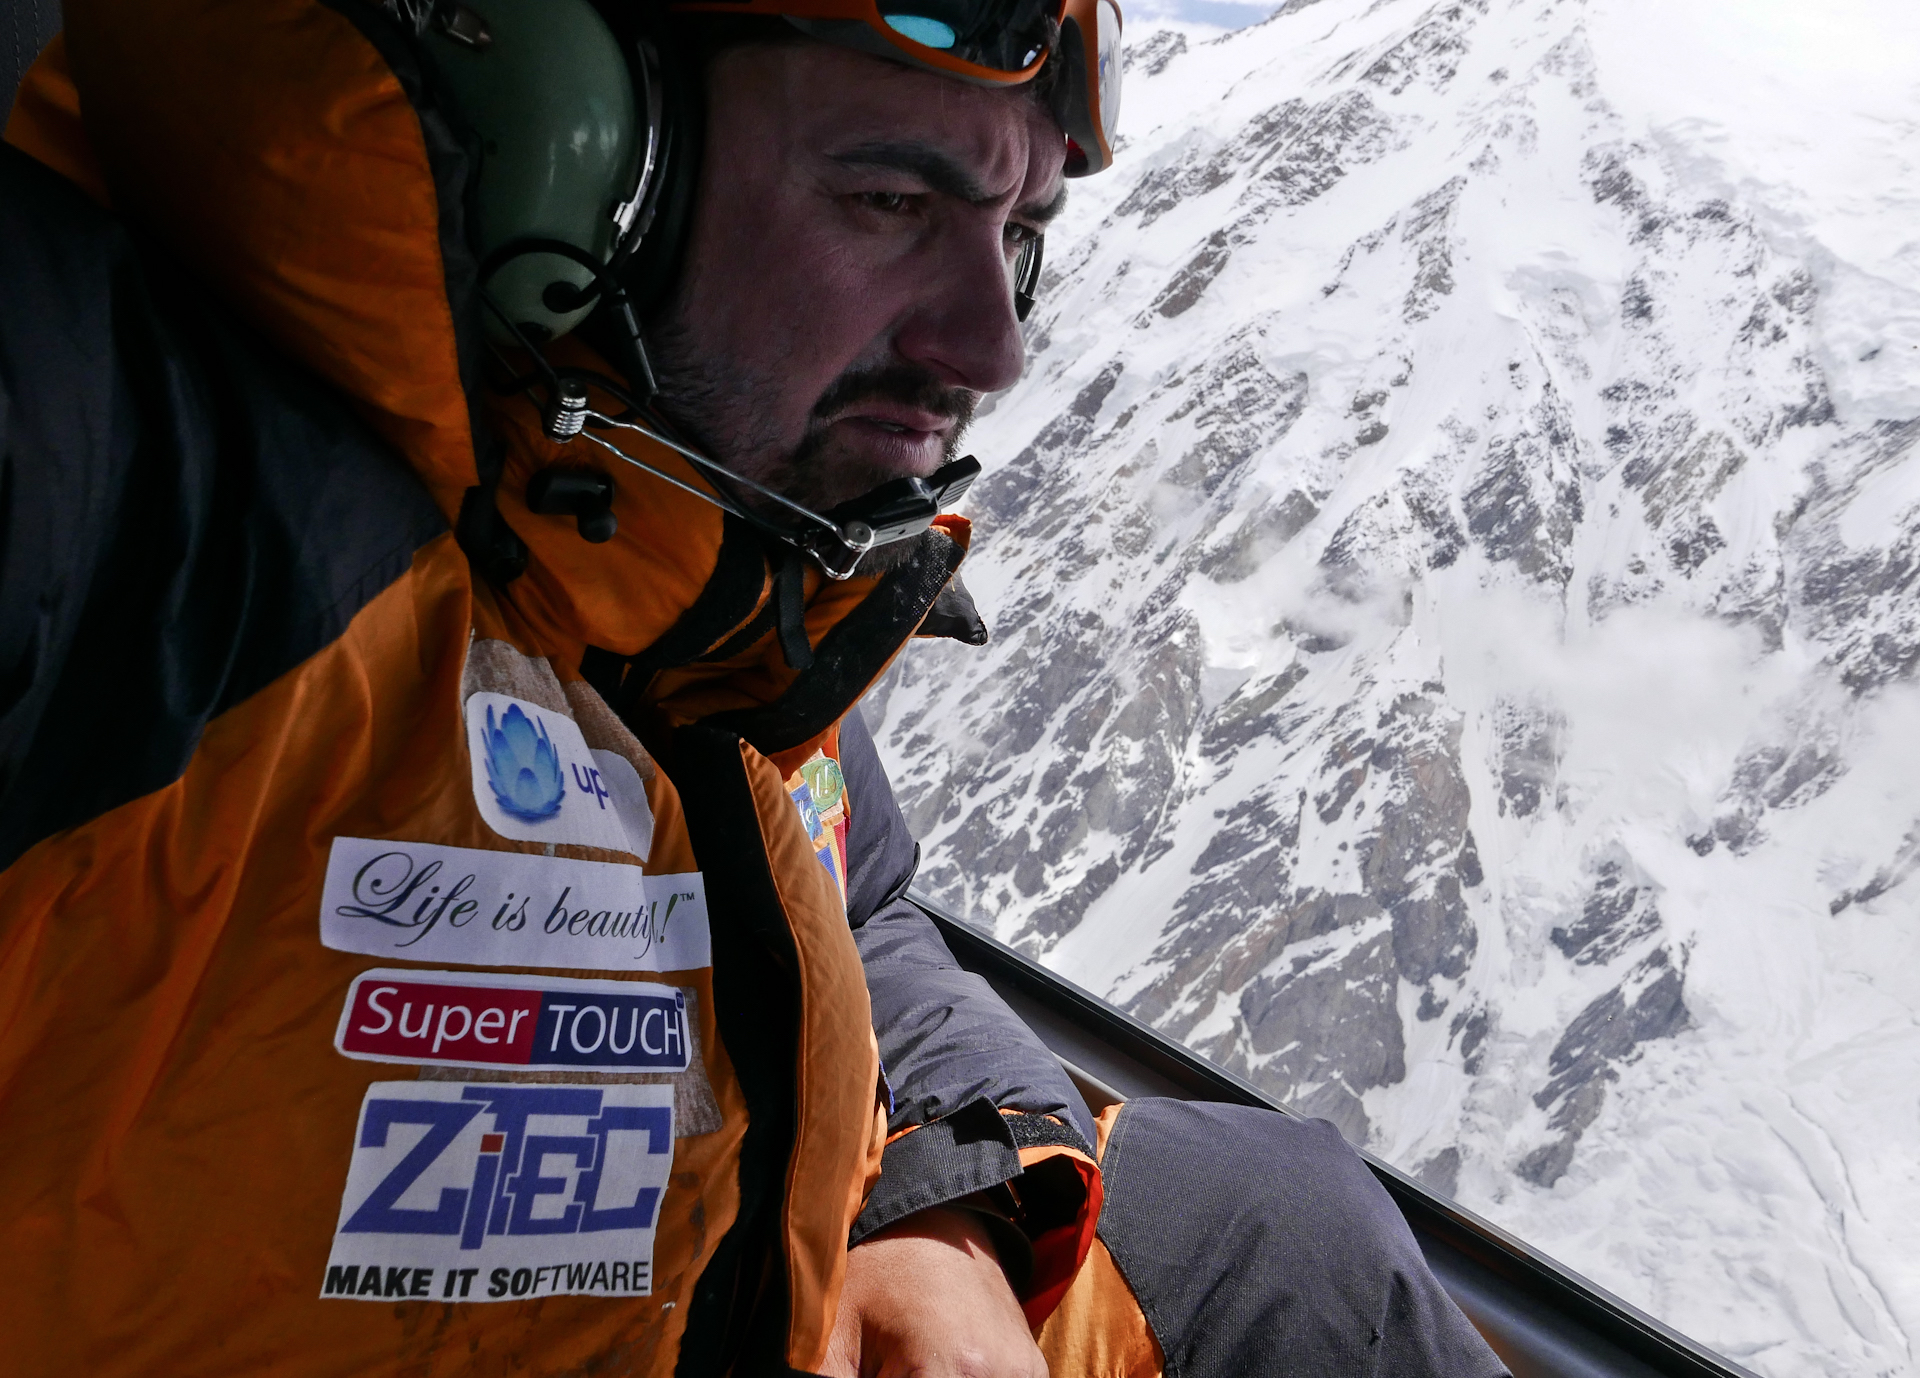 Alex Gavan during the helicopter search mission. [Photo] Alex Gavan